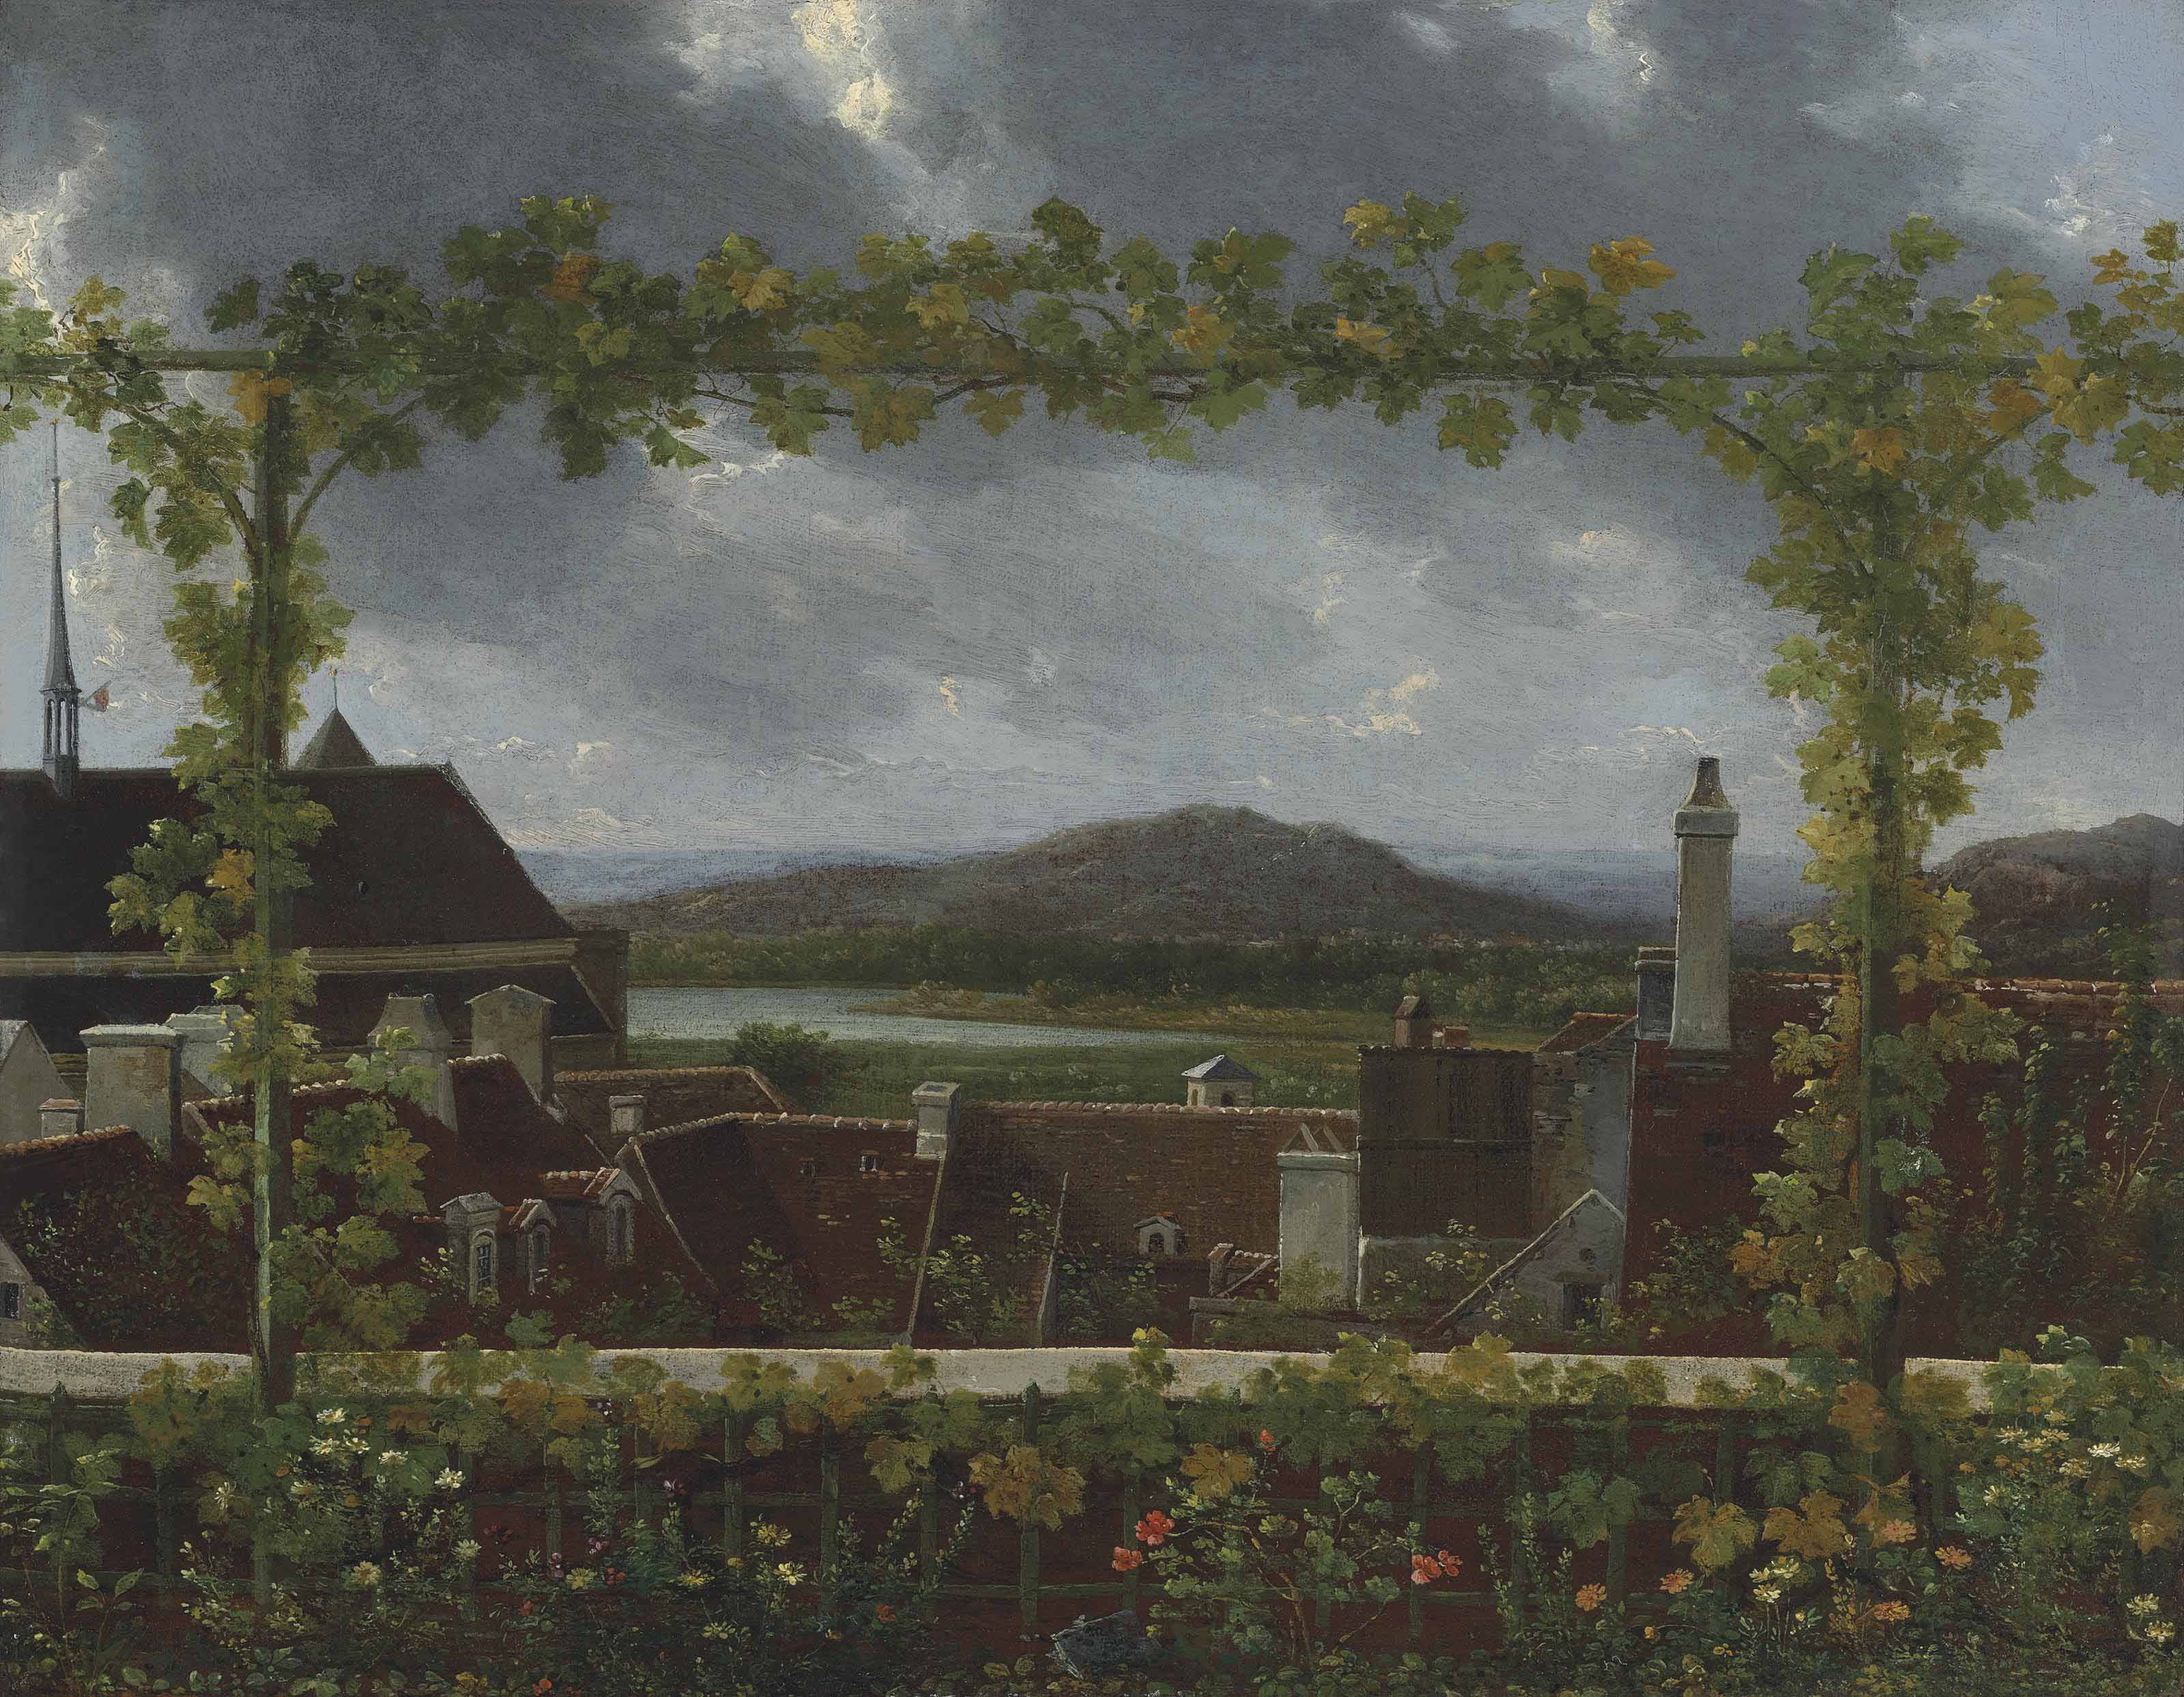 A grapevine on a flowering trellis framing a town in an extensive river landscape, possibly near Lake Geneva